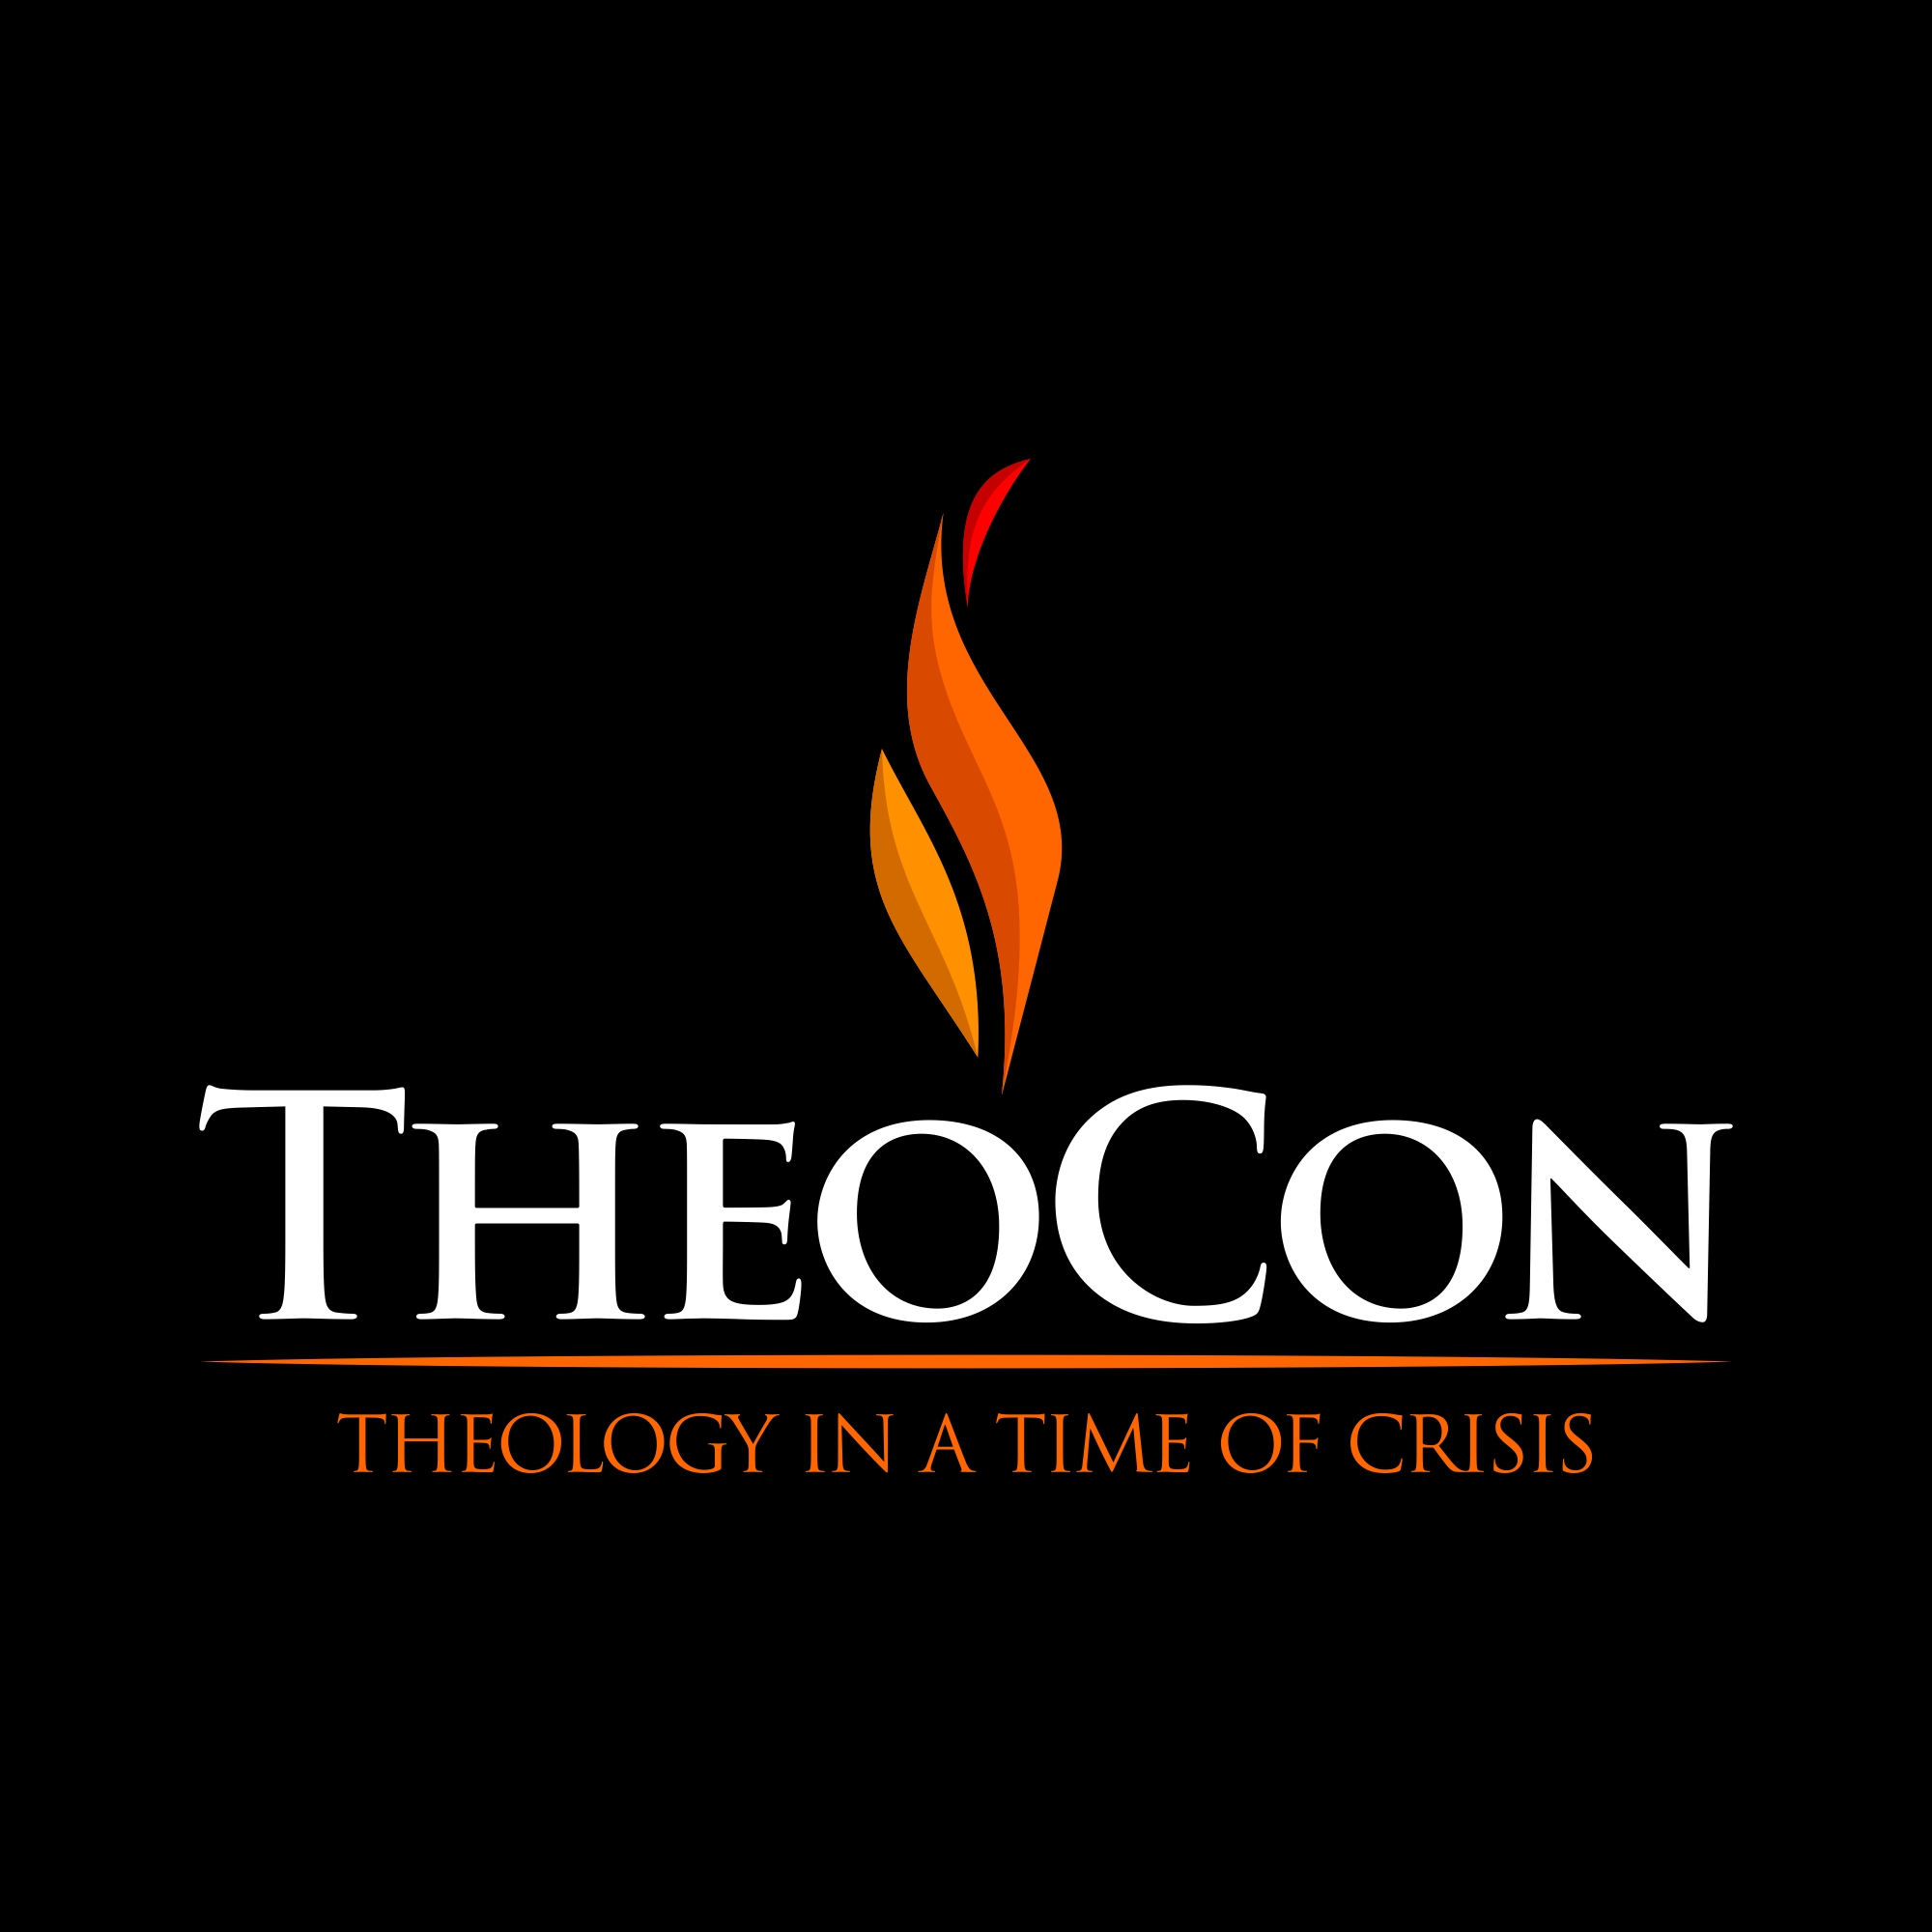 TheoCon: Theology in a Time of Crisis